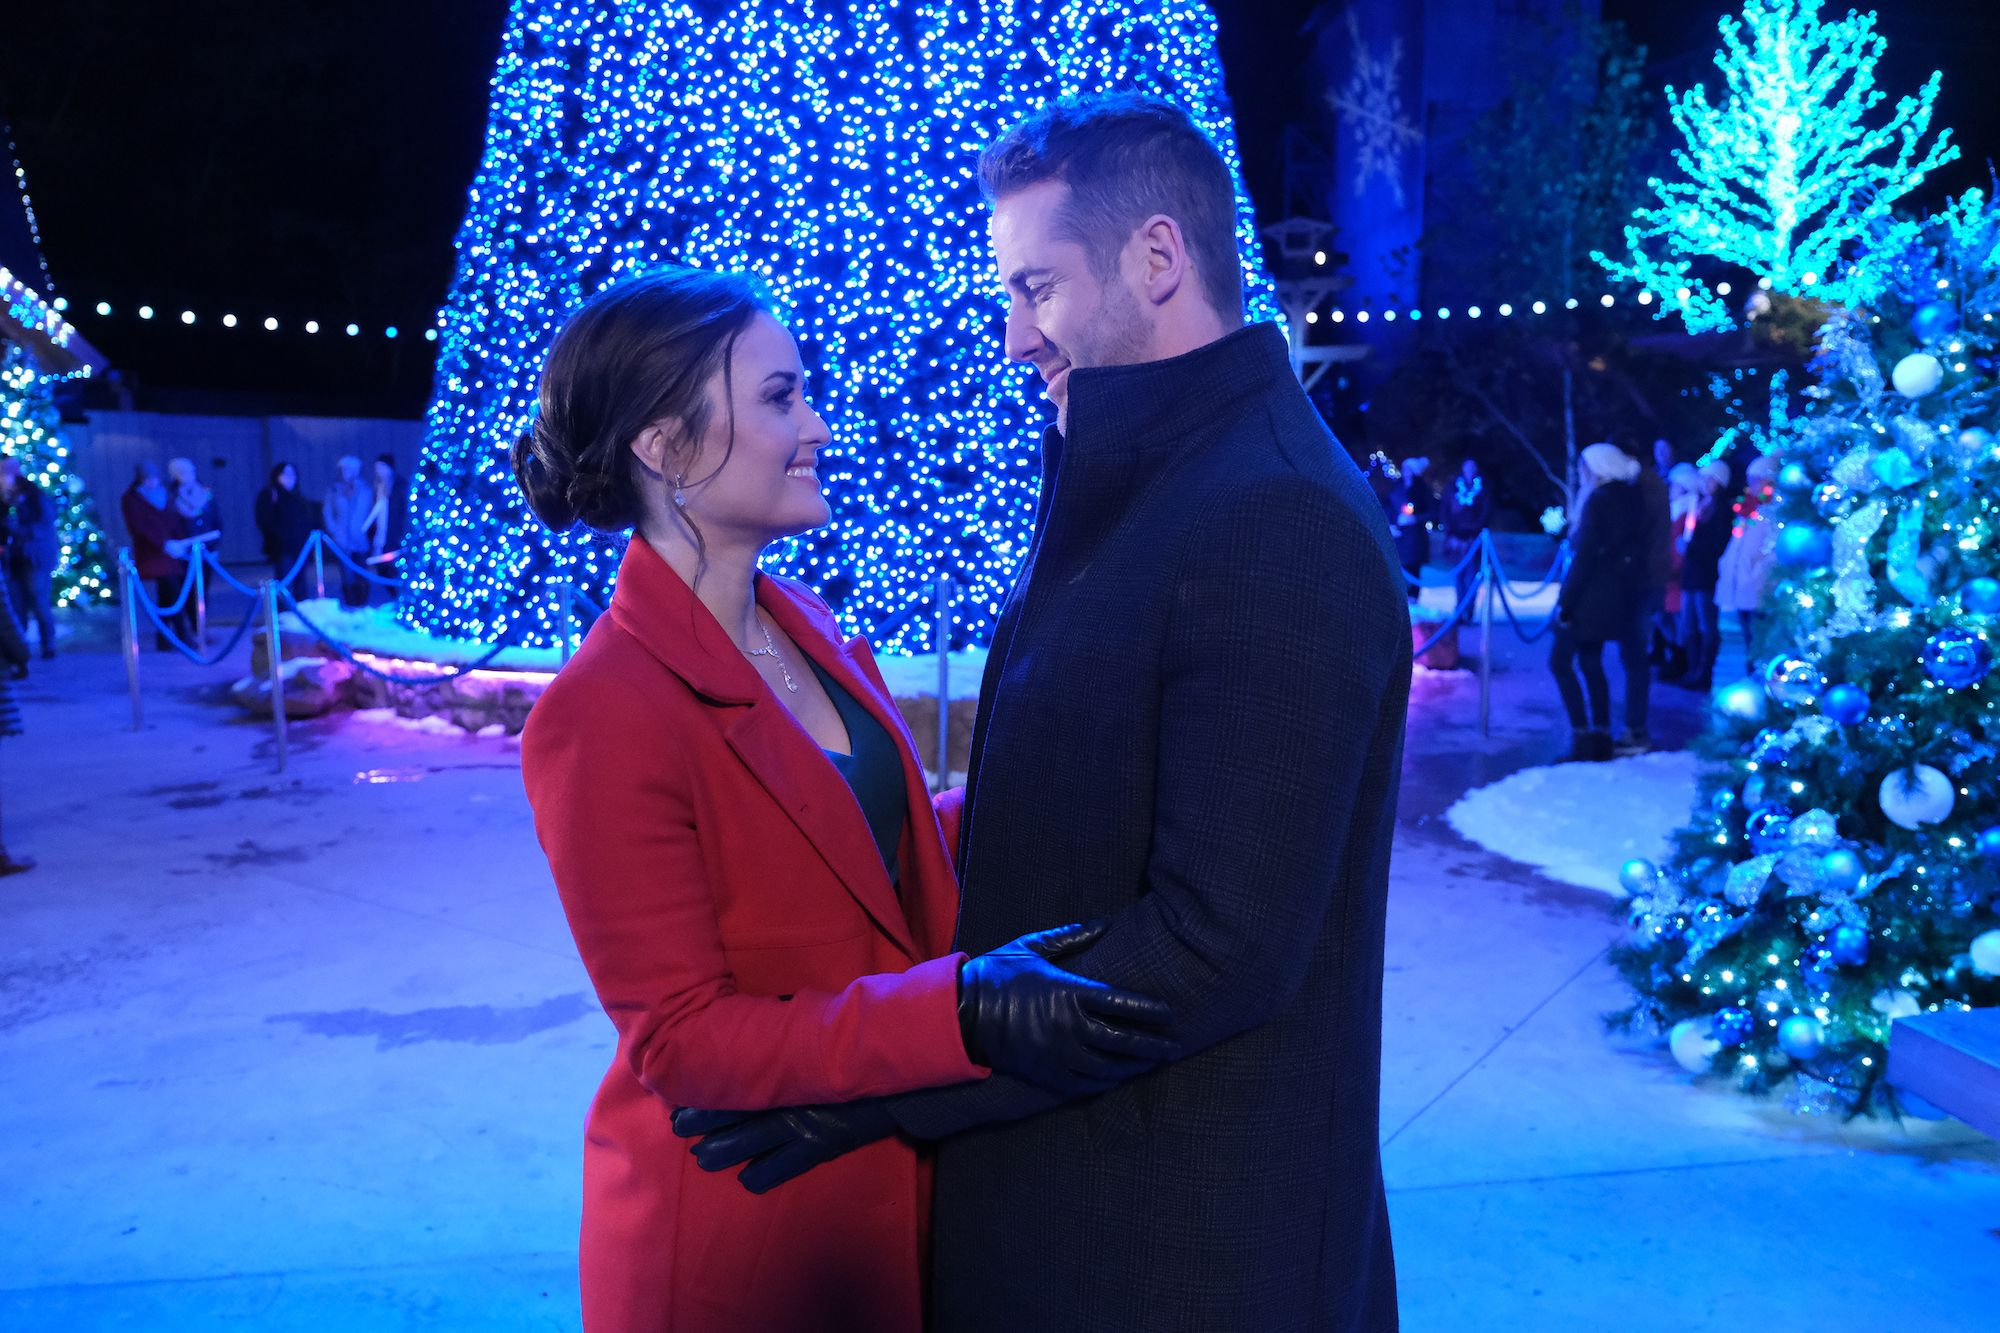 When Is Christmas In July 2020 Hallmark Christmas in July 2020   Hallmark Channel Christmas in